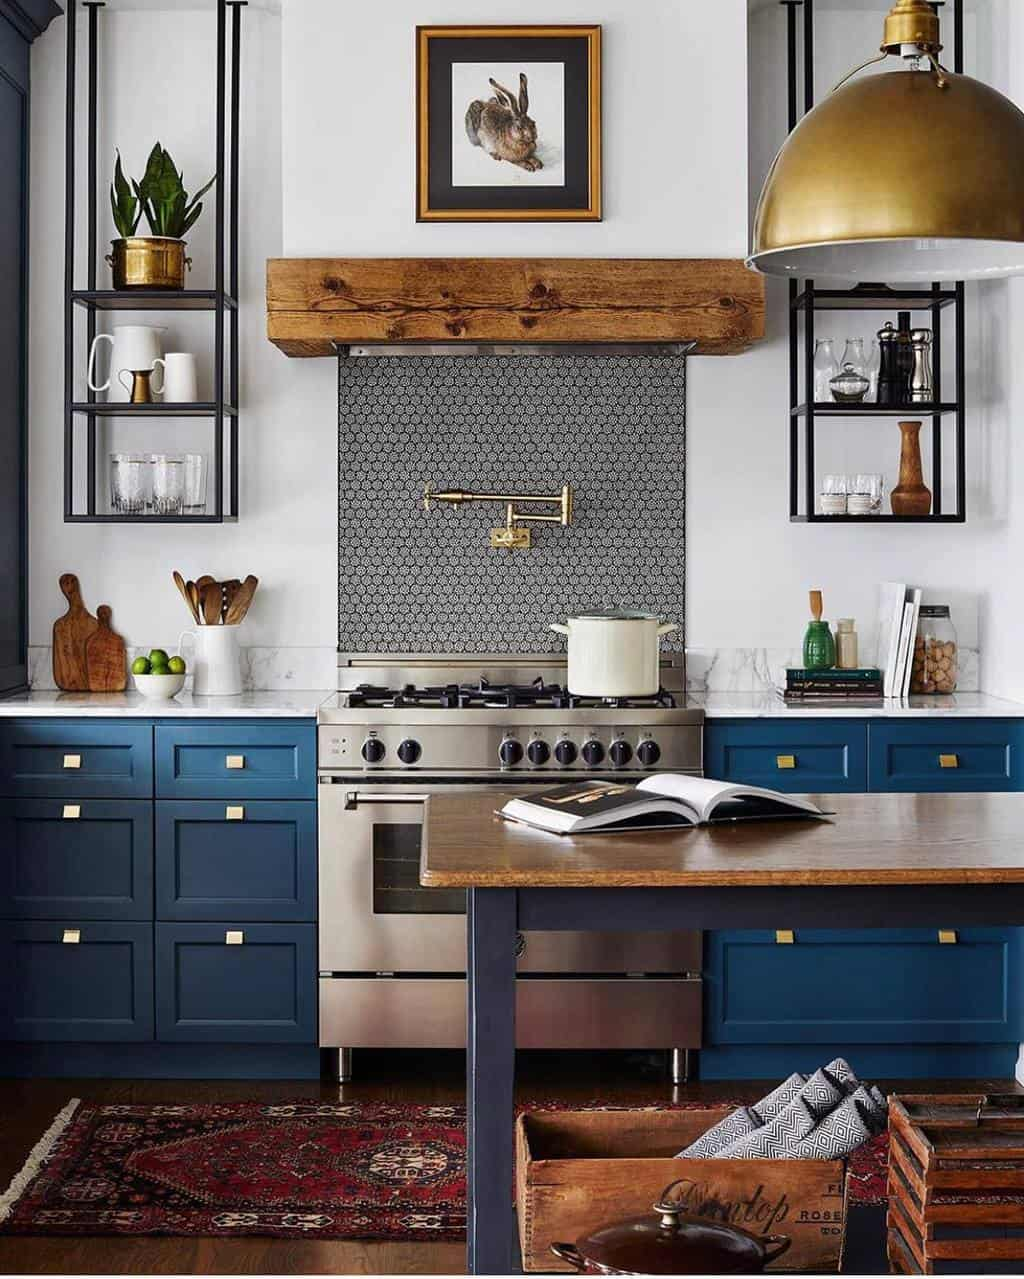 blue kitchen cabinets and tiled stove backsplash in an eclectic kitchen